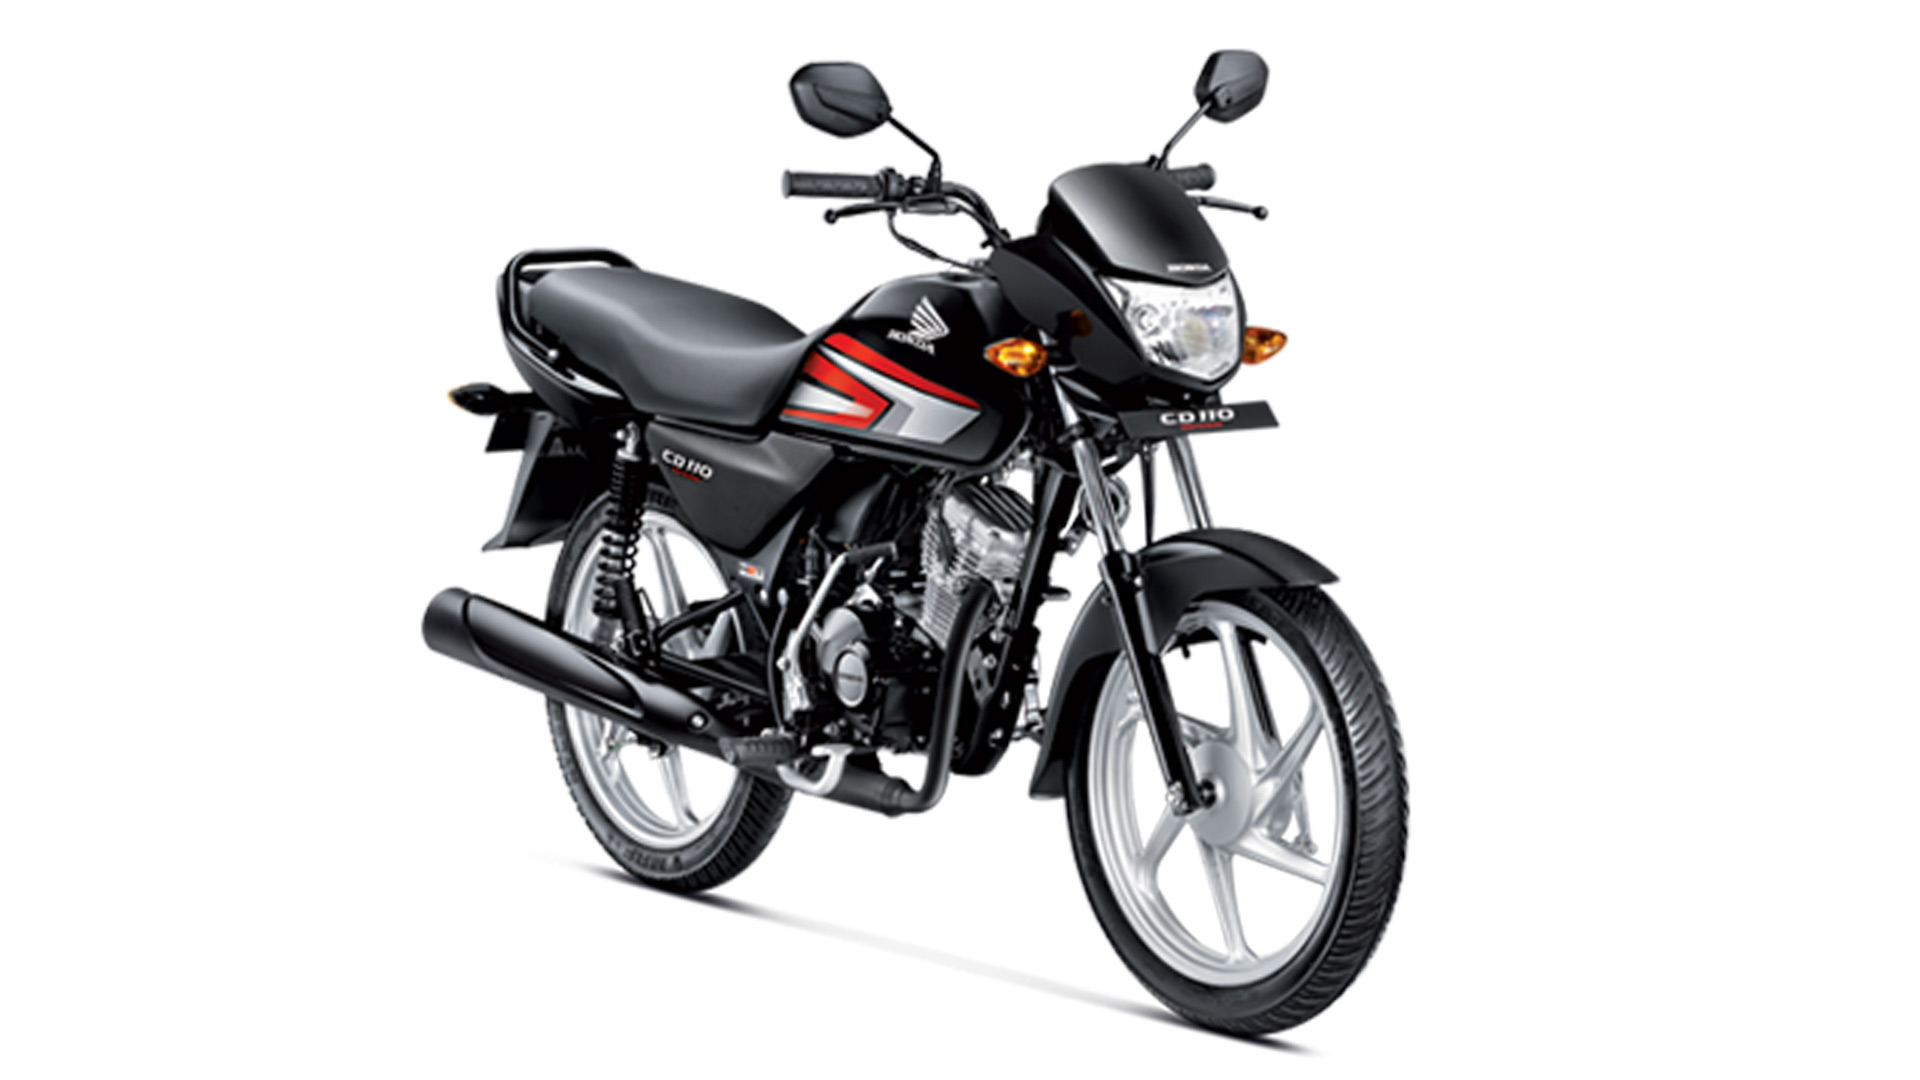 Honda CD 110 Dream 2014 STD - Price, Mileage, Reviews, Specification, Gallery - Overdrive